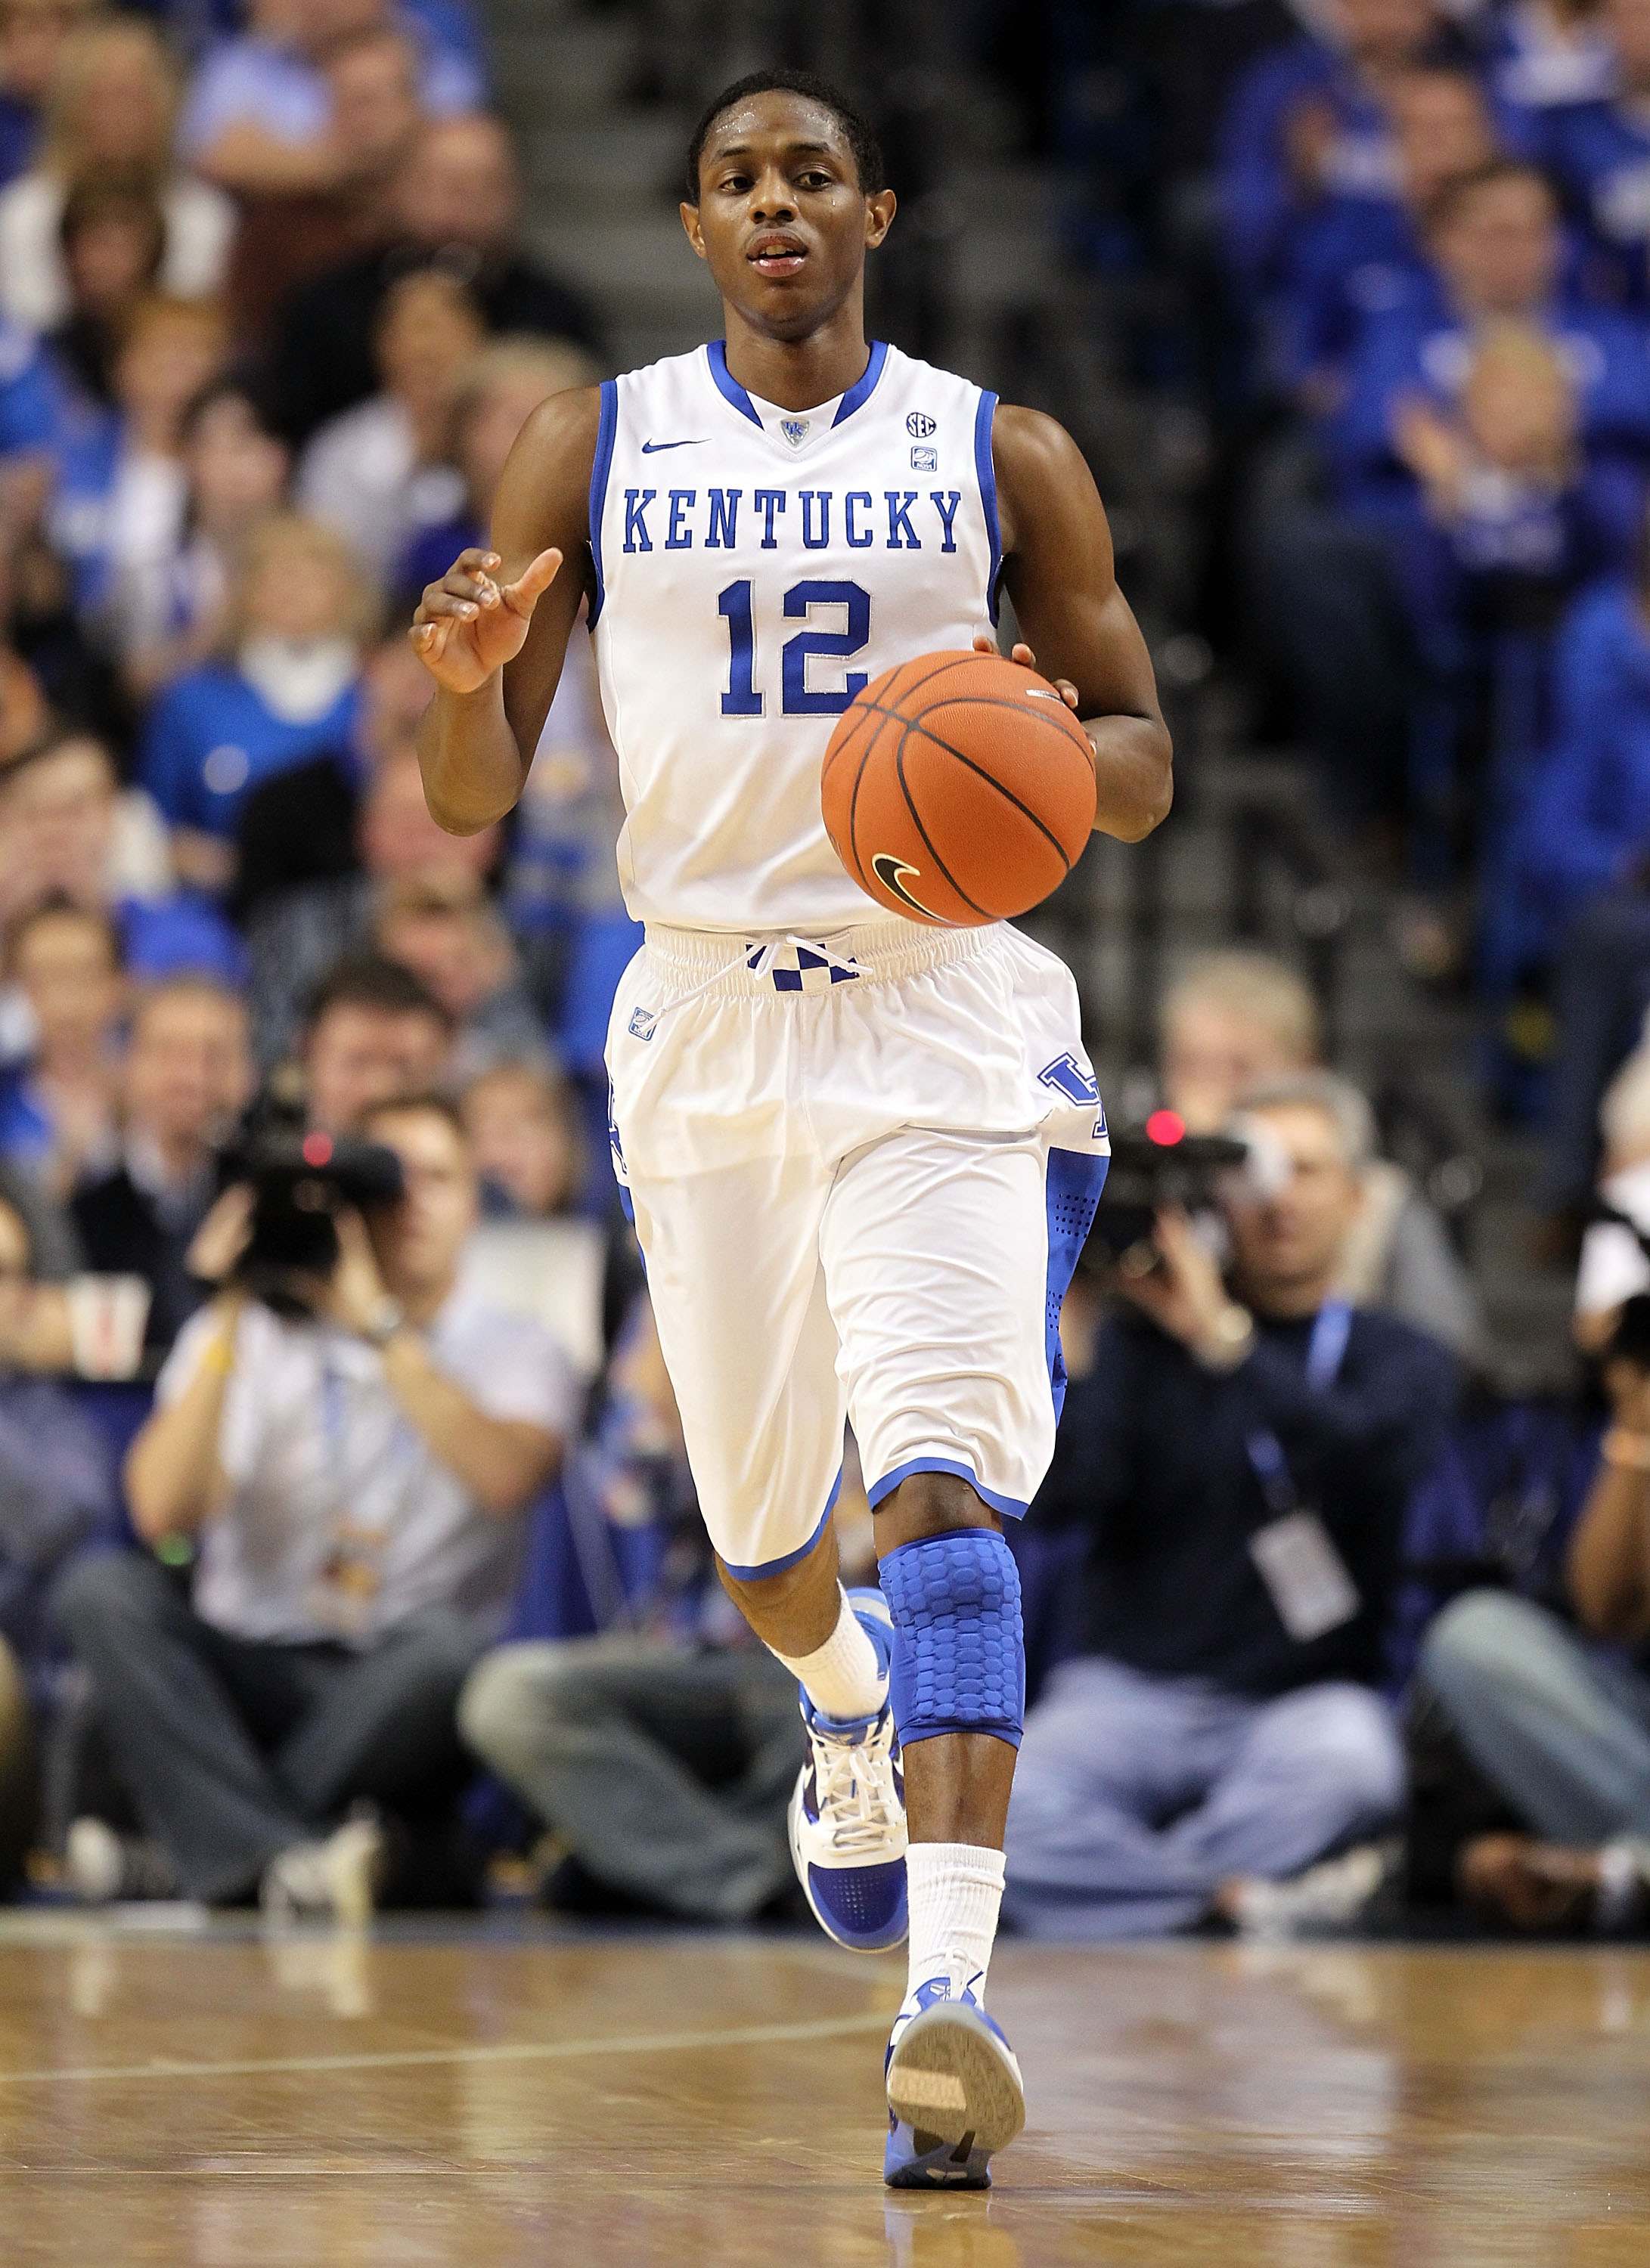 LEXINGTON, KY - JANUARY 29:  Brandon Knight #12 of the Kentucky Wildcats dribbles the ball during the SEC game against the Georgia Bulldogs at Rupp Arena on January 29, 2011 in Lexington, Kentucky. Kentucky won 66-60.  (Photo by Andy Lyons/Getty Images)